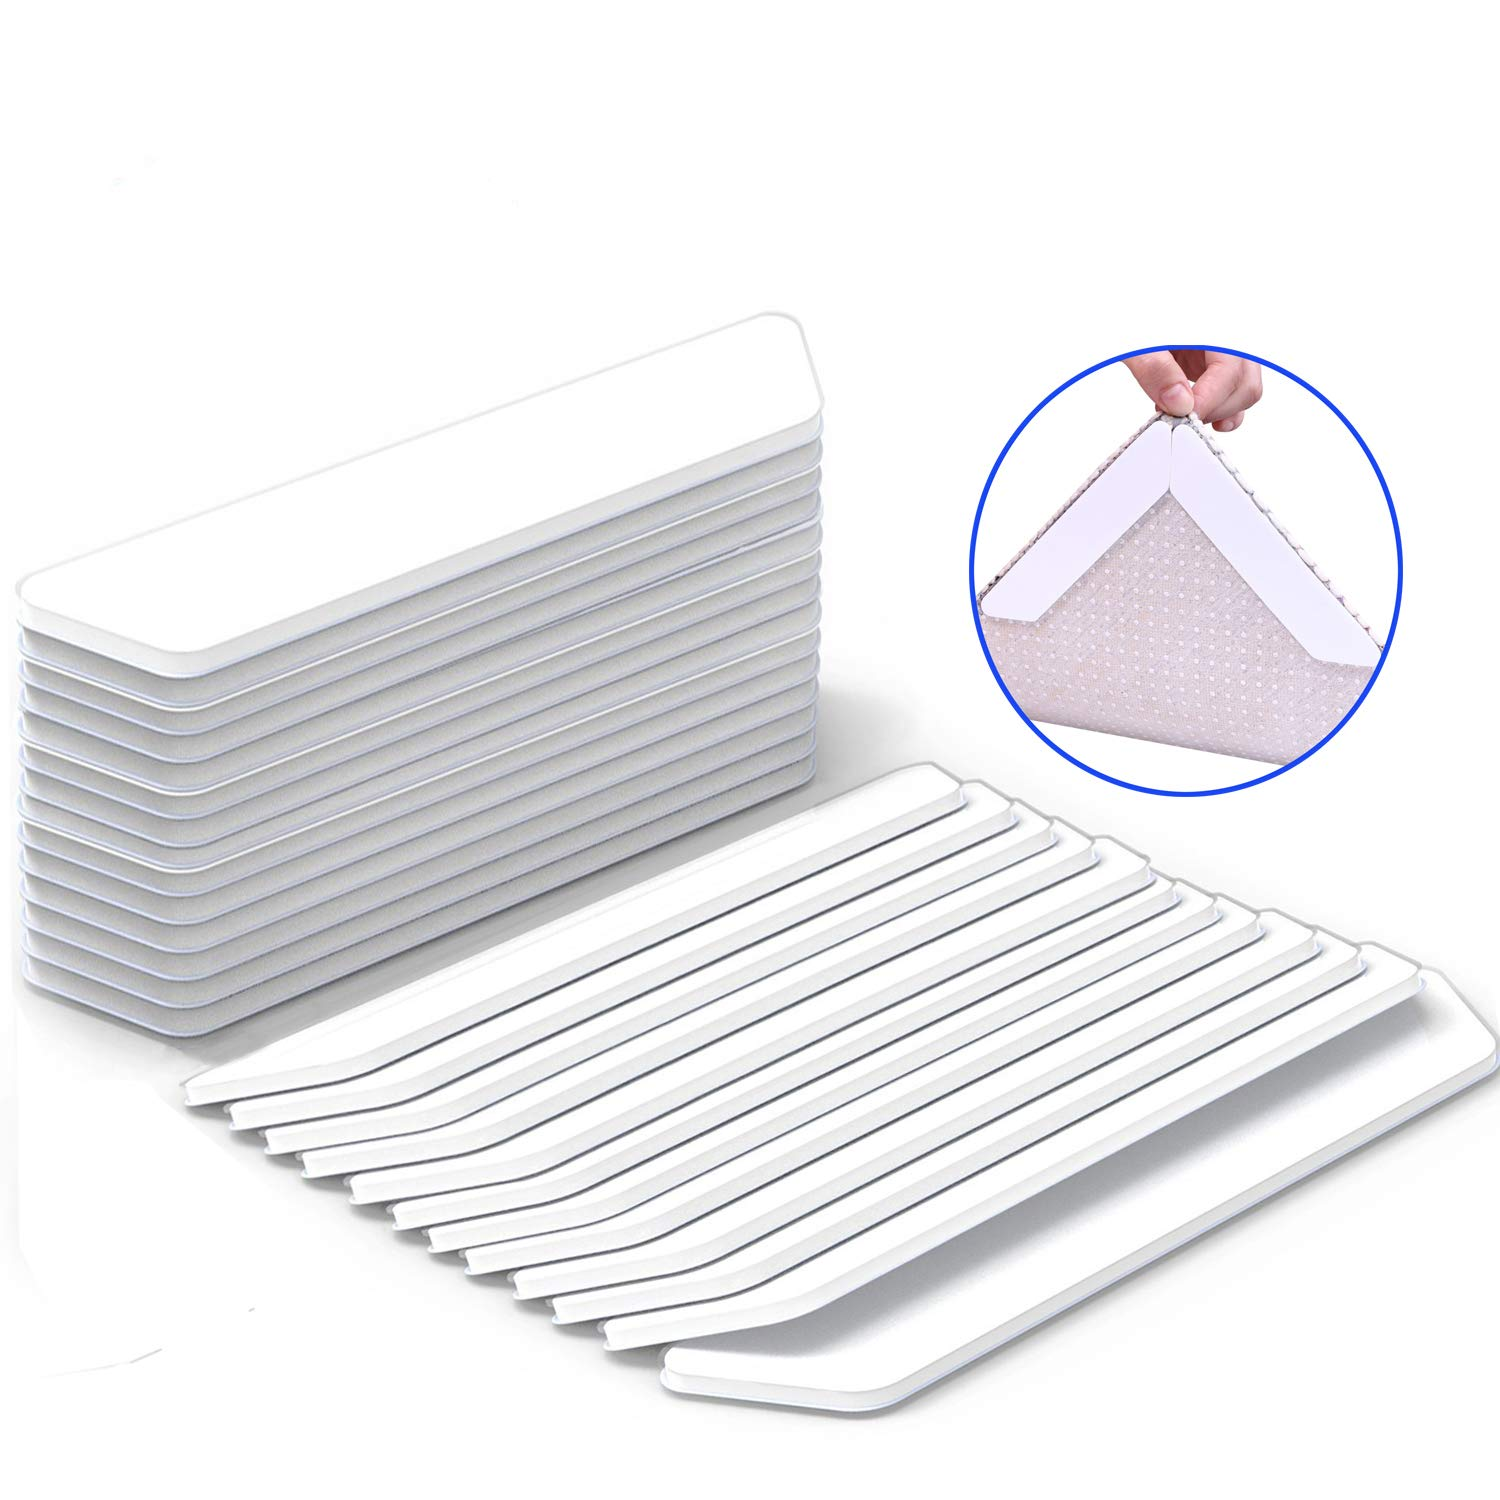 Antallcky Rug Grippers,24pcs Anti Curling and Non Slip Rug Carpet Gripper,Strong Stickiness without Hurting Floor, Stop Slipping, Reusable for Various Floors and Rug Pads-Set of 24,White